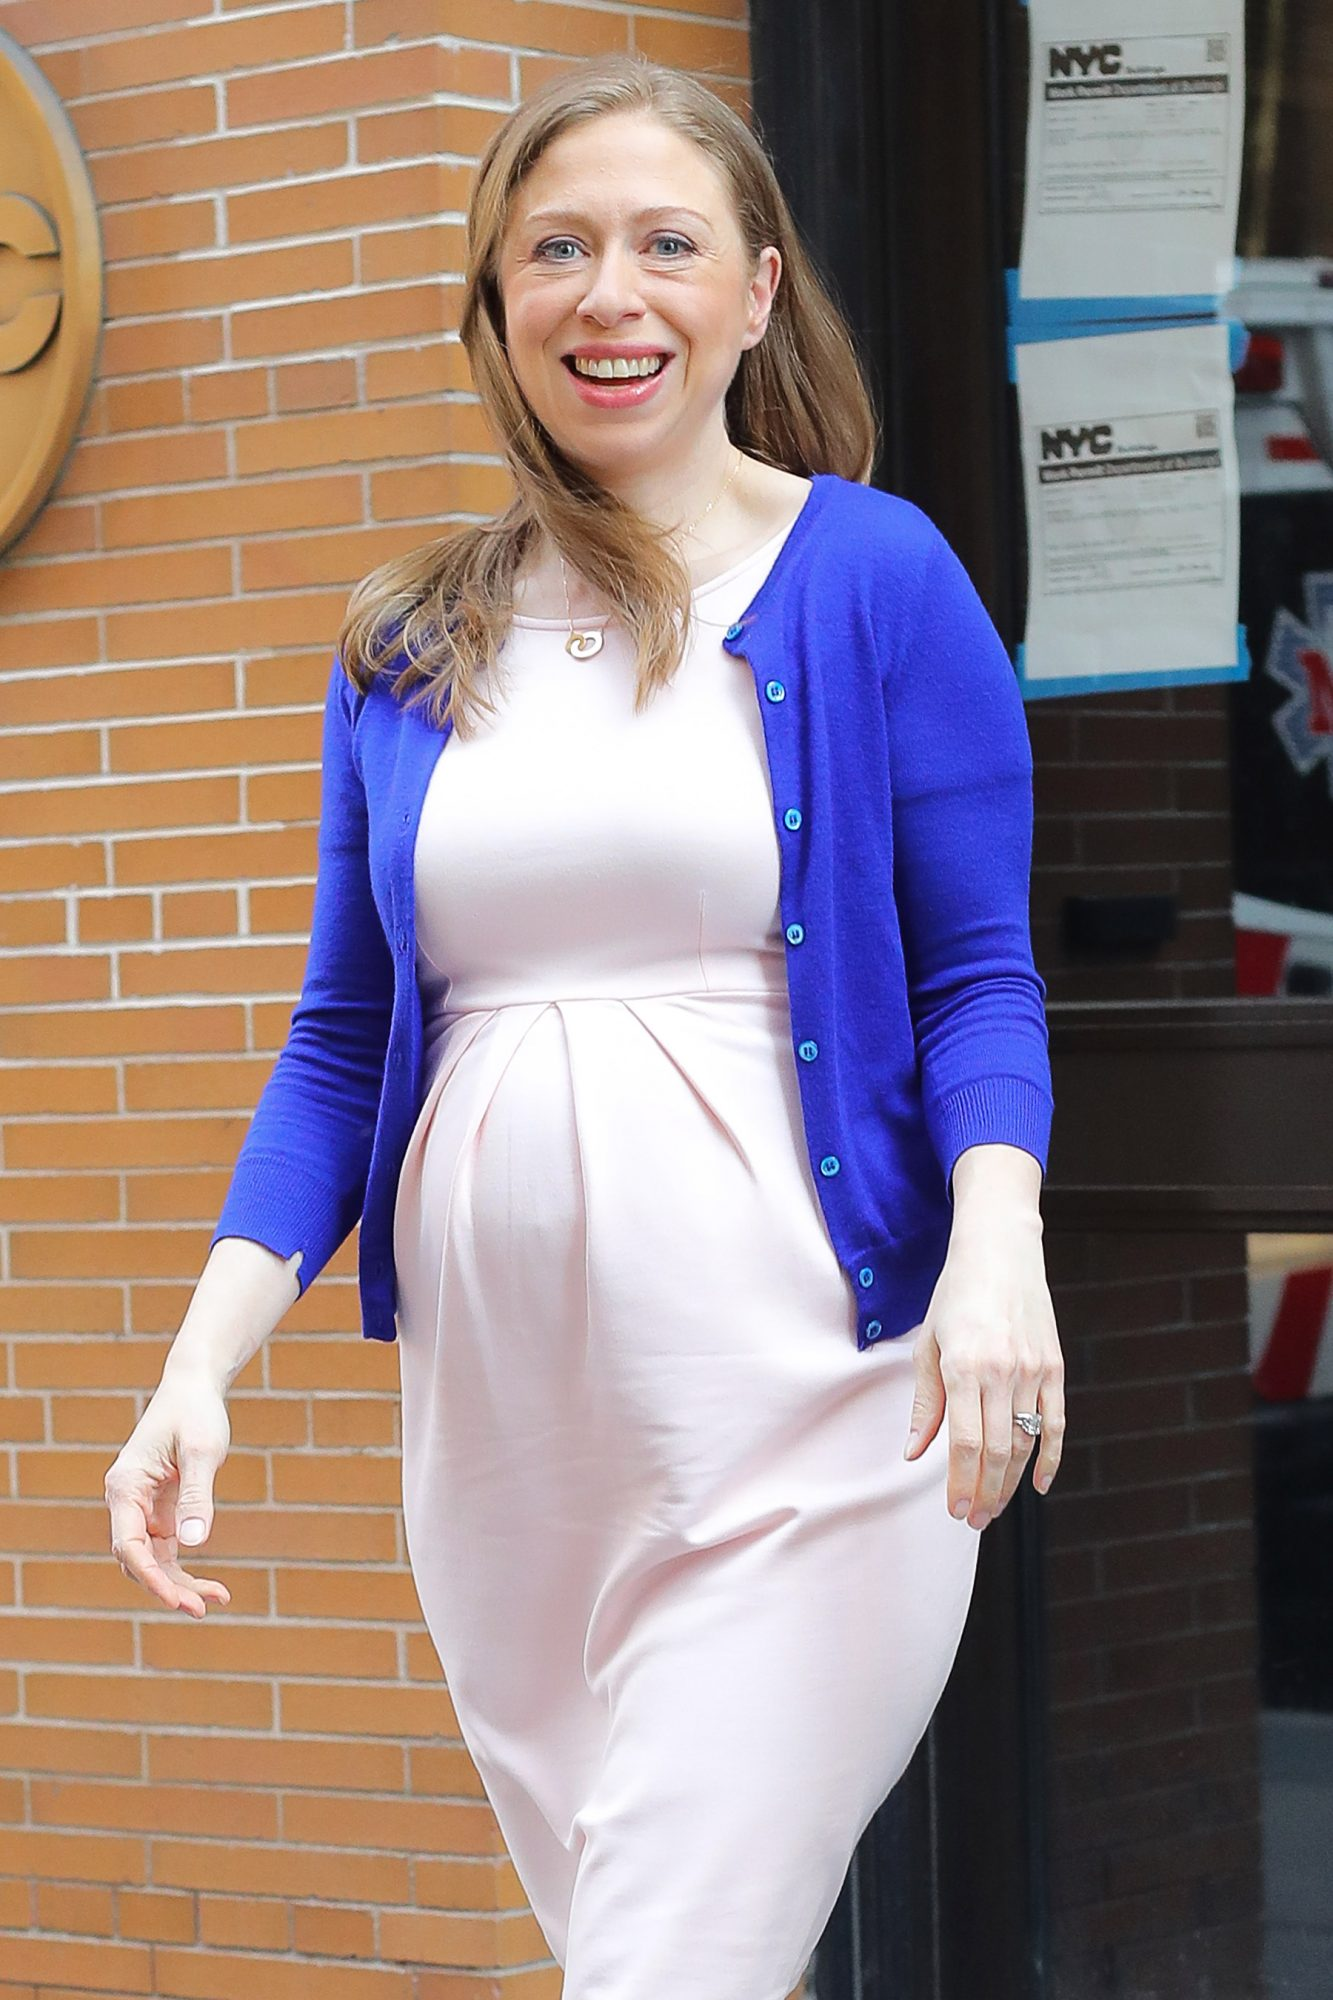 EXCLUSIVE: Pregnant Chelsea Clinton Shows Her Baby Bump While All Smiling Leaving The View  In New York City